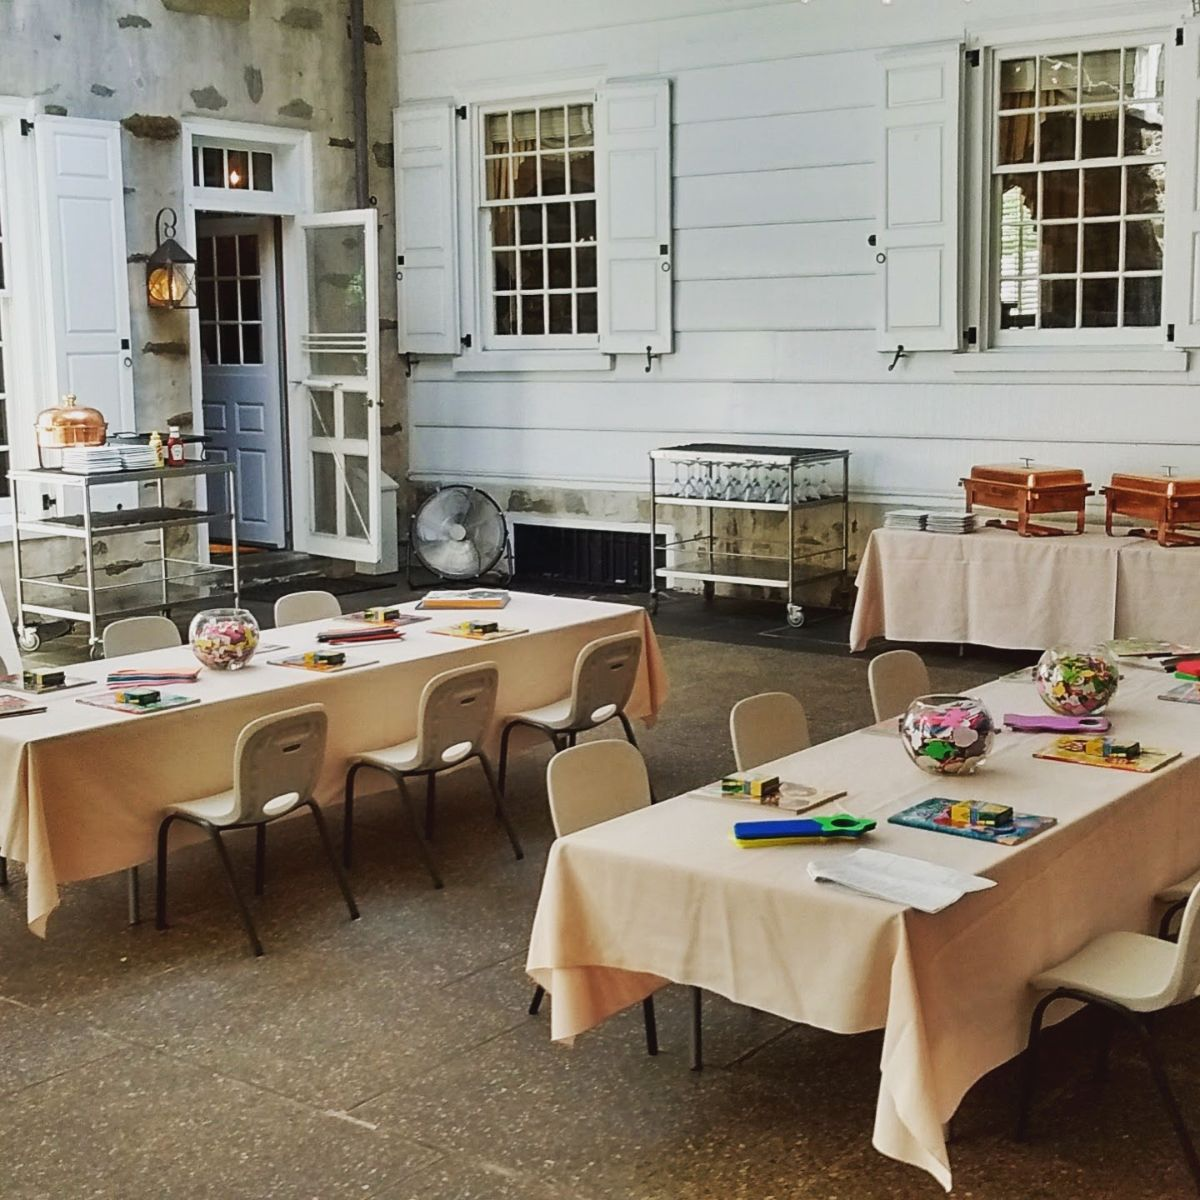 tables prepared for a special event